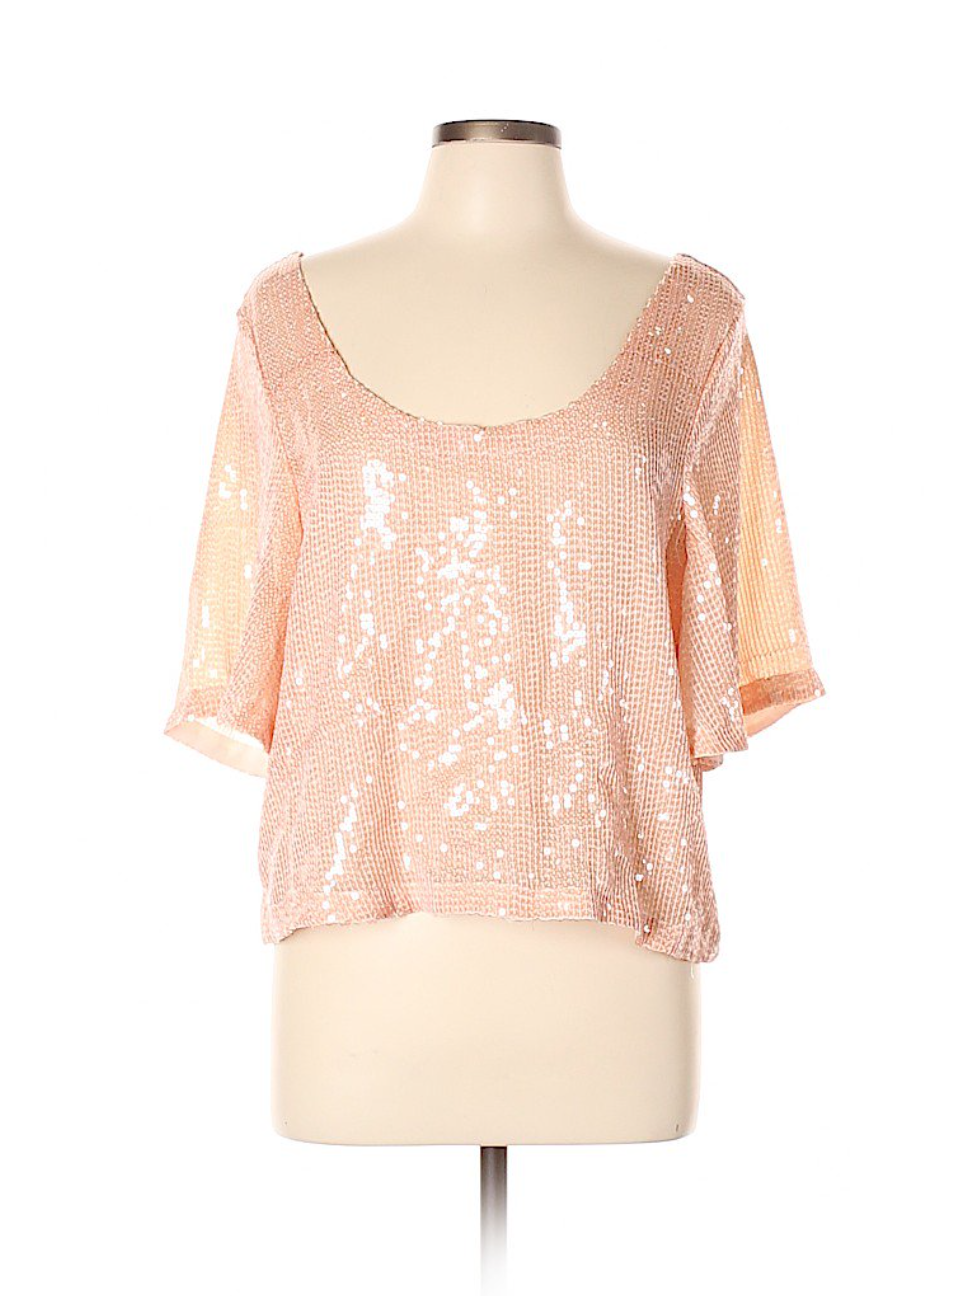 Free People Blush Sequin Top By ThredUp